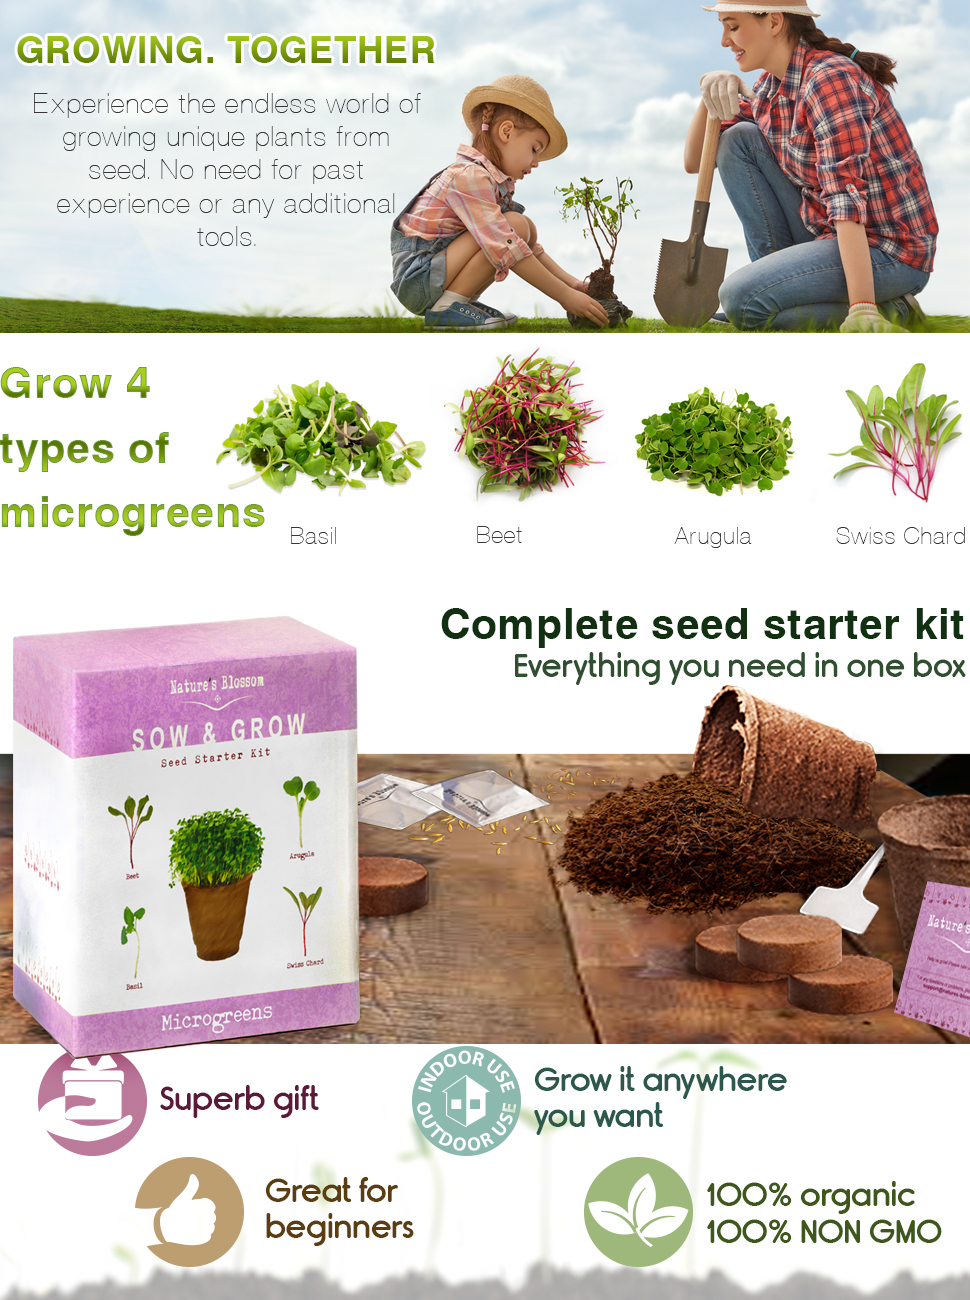 everything you need to grow 4 types of microgreens from seed no additional tools or past experience required get you microgreens starter kit today